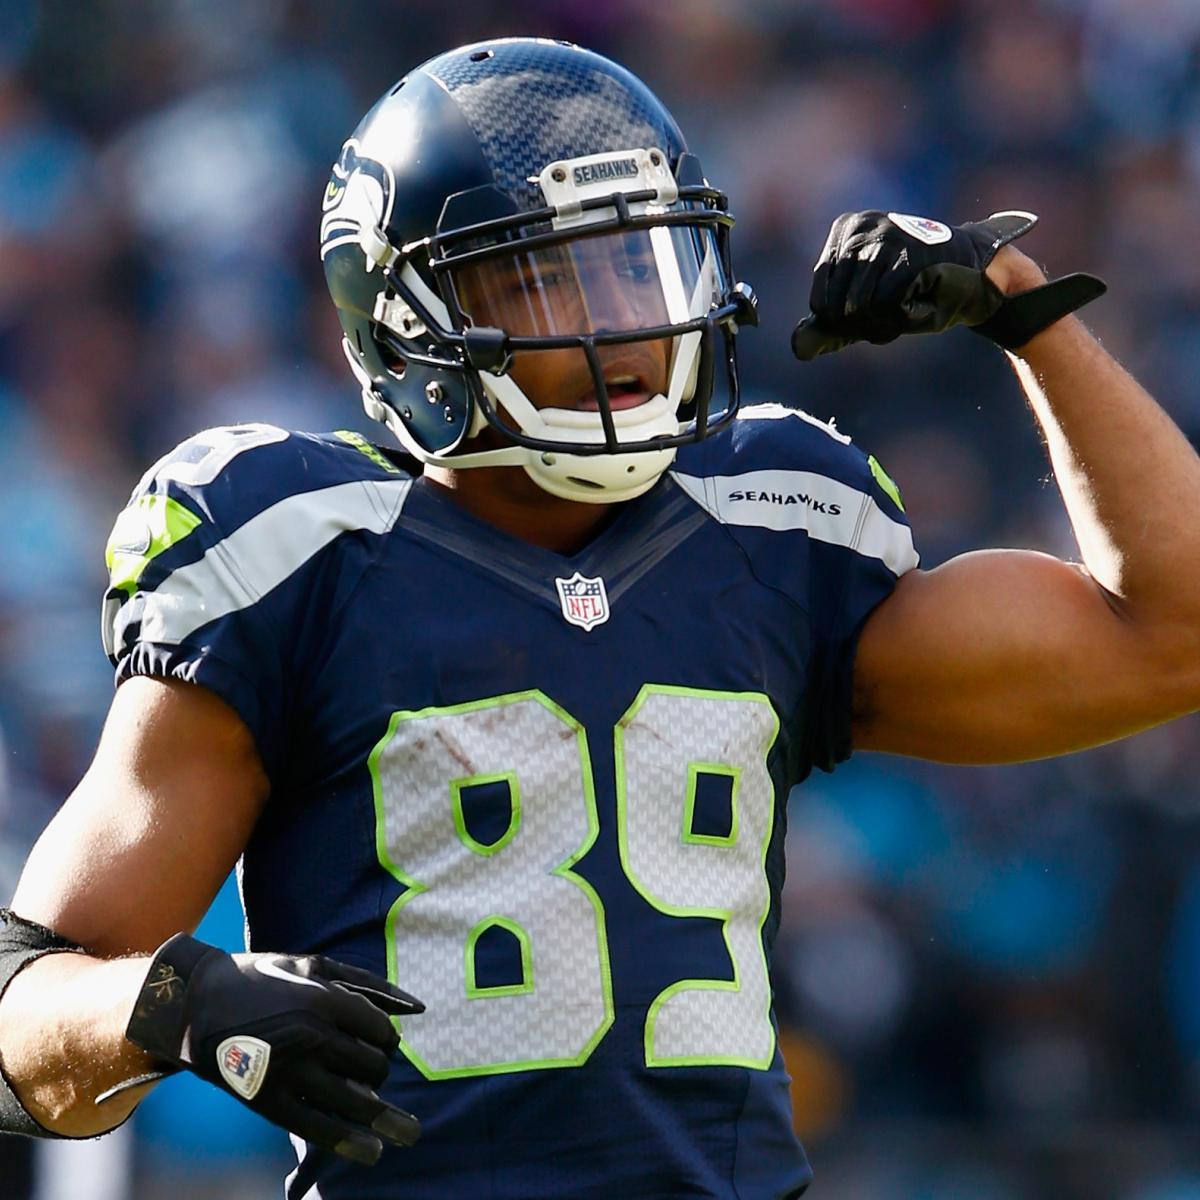 Seattle Seahawks Sign Doug Baldwin To 4 Year Extension: Which NFL Wide Receivers Are Primed To Be The Next Doug